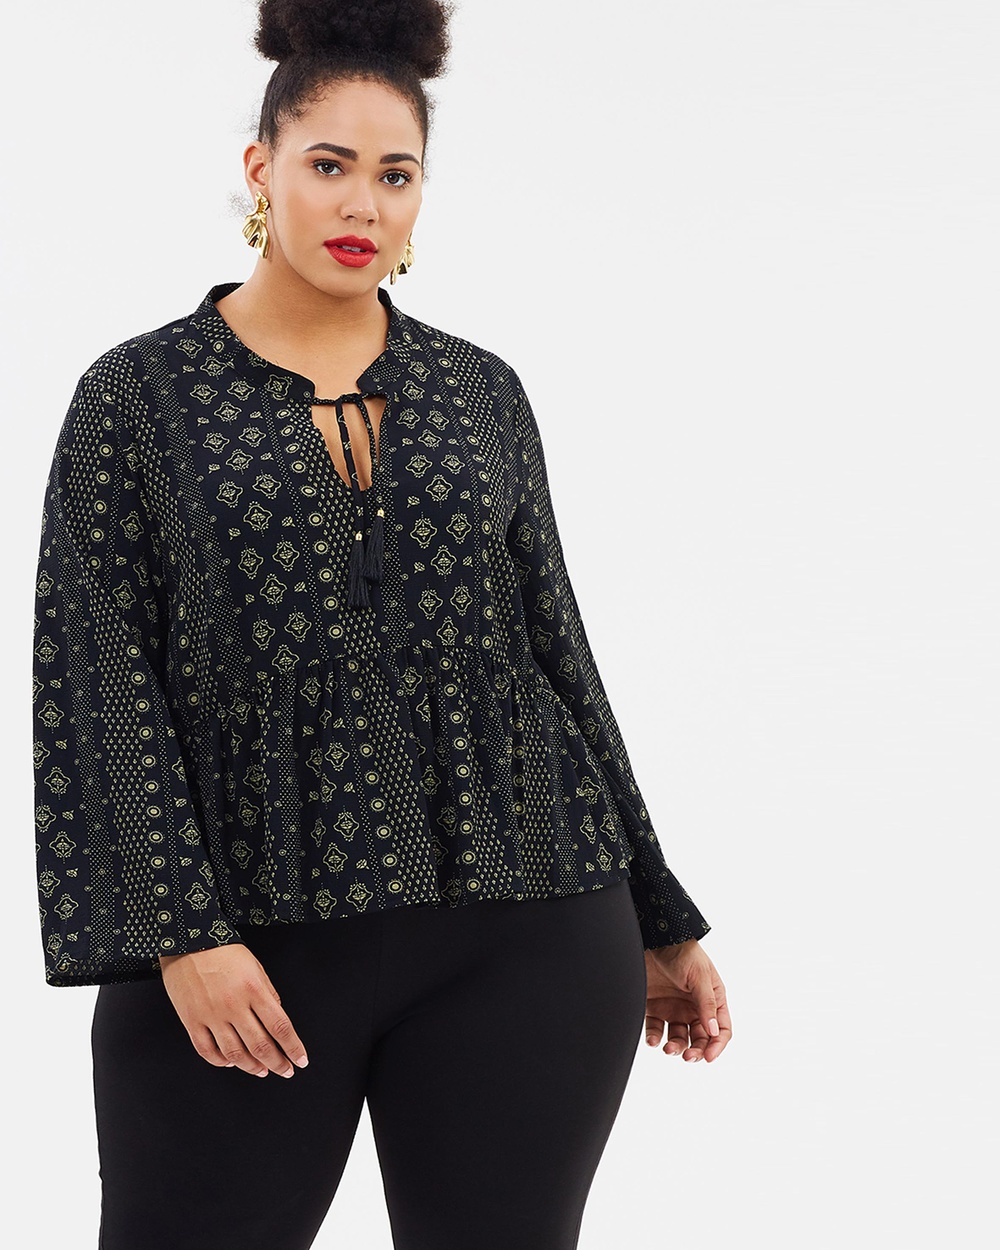 Atmos & Here Curvy ICONIC EXCLUSIVE ELISE BLOUSE Tops Black & Neutral ICONIC EXCLUSIVE ELISE BLOUSE